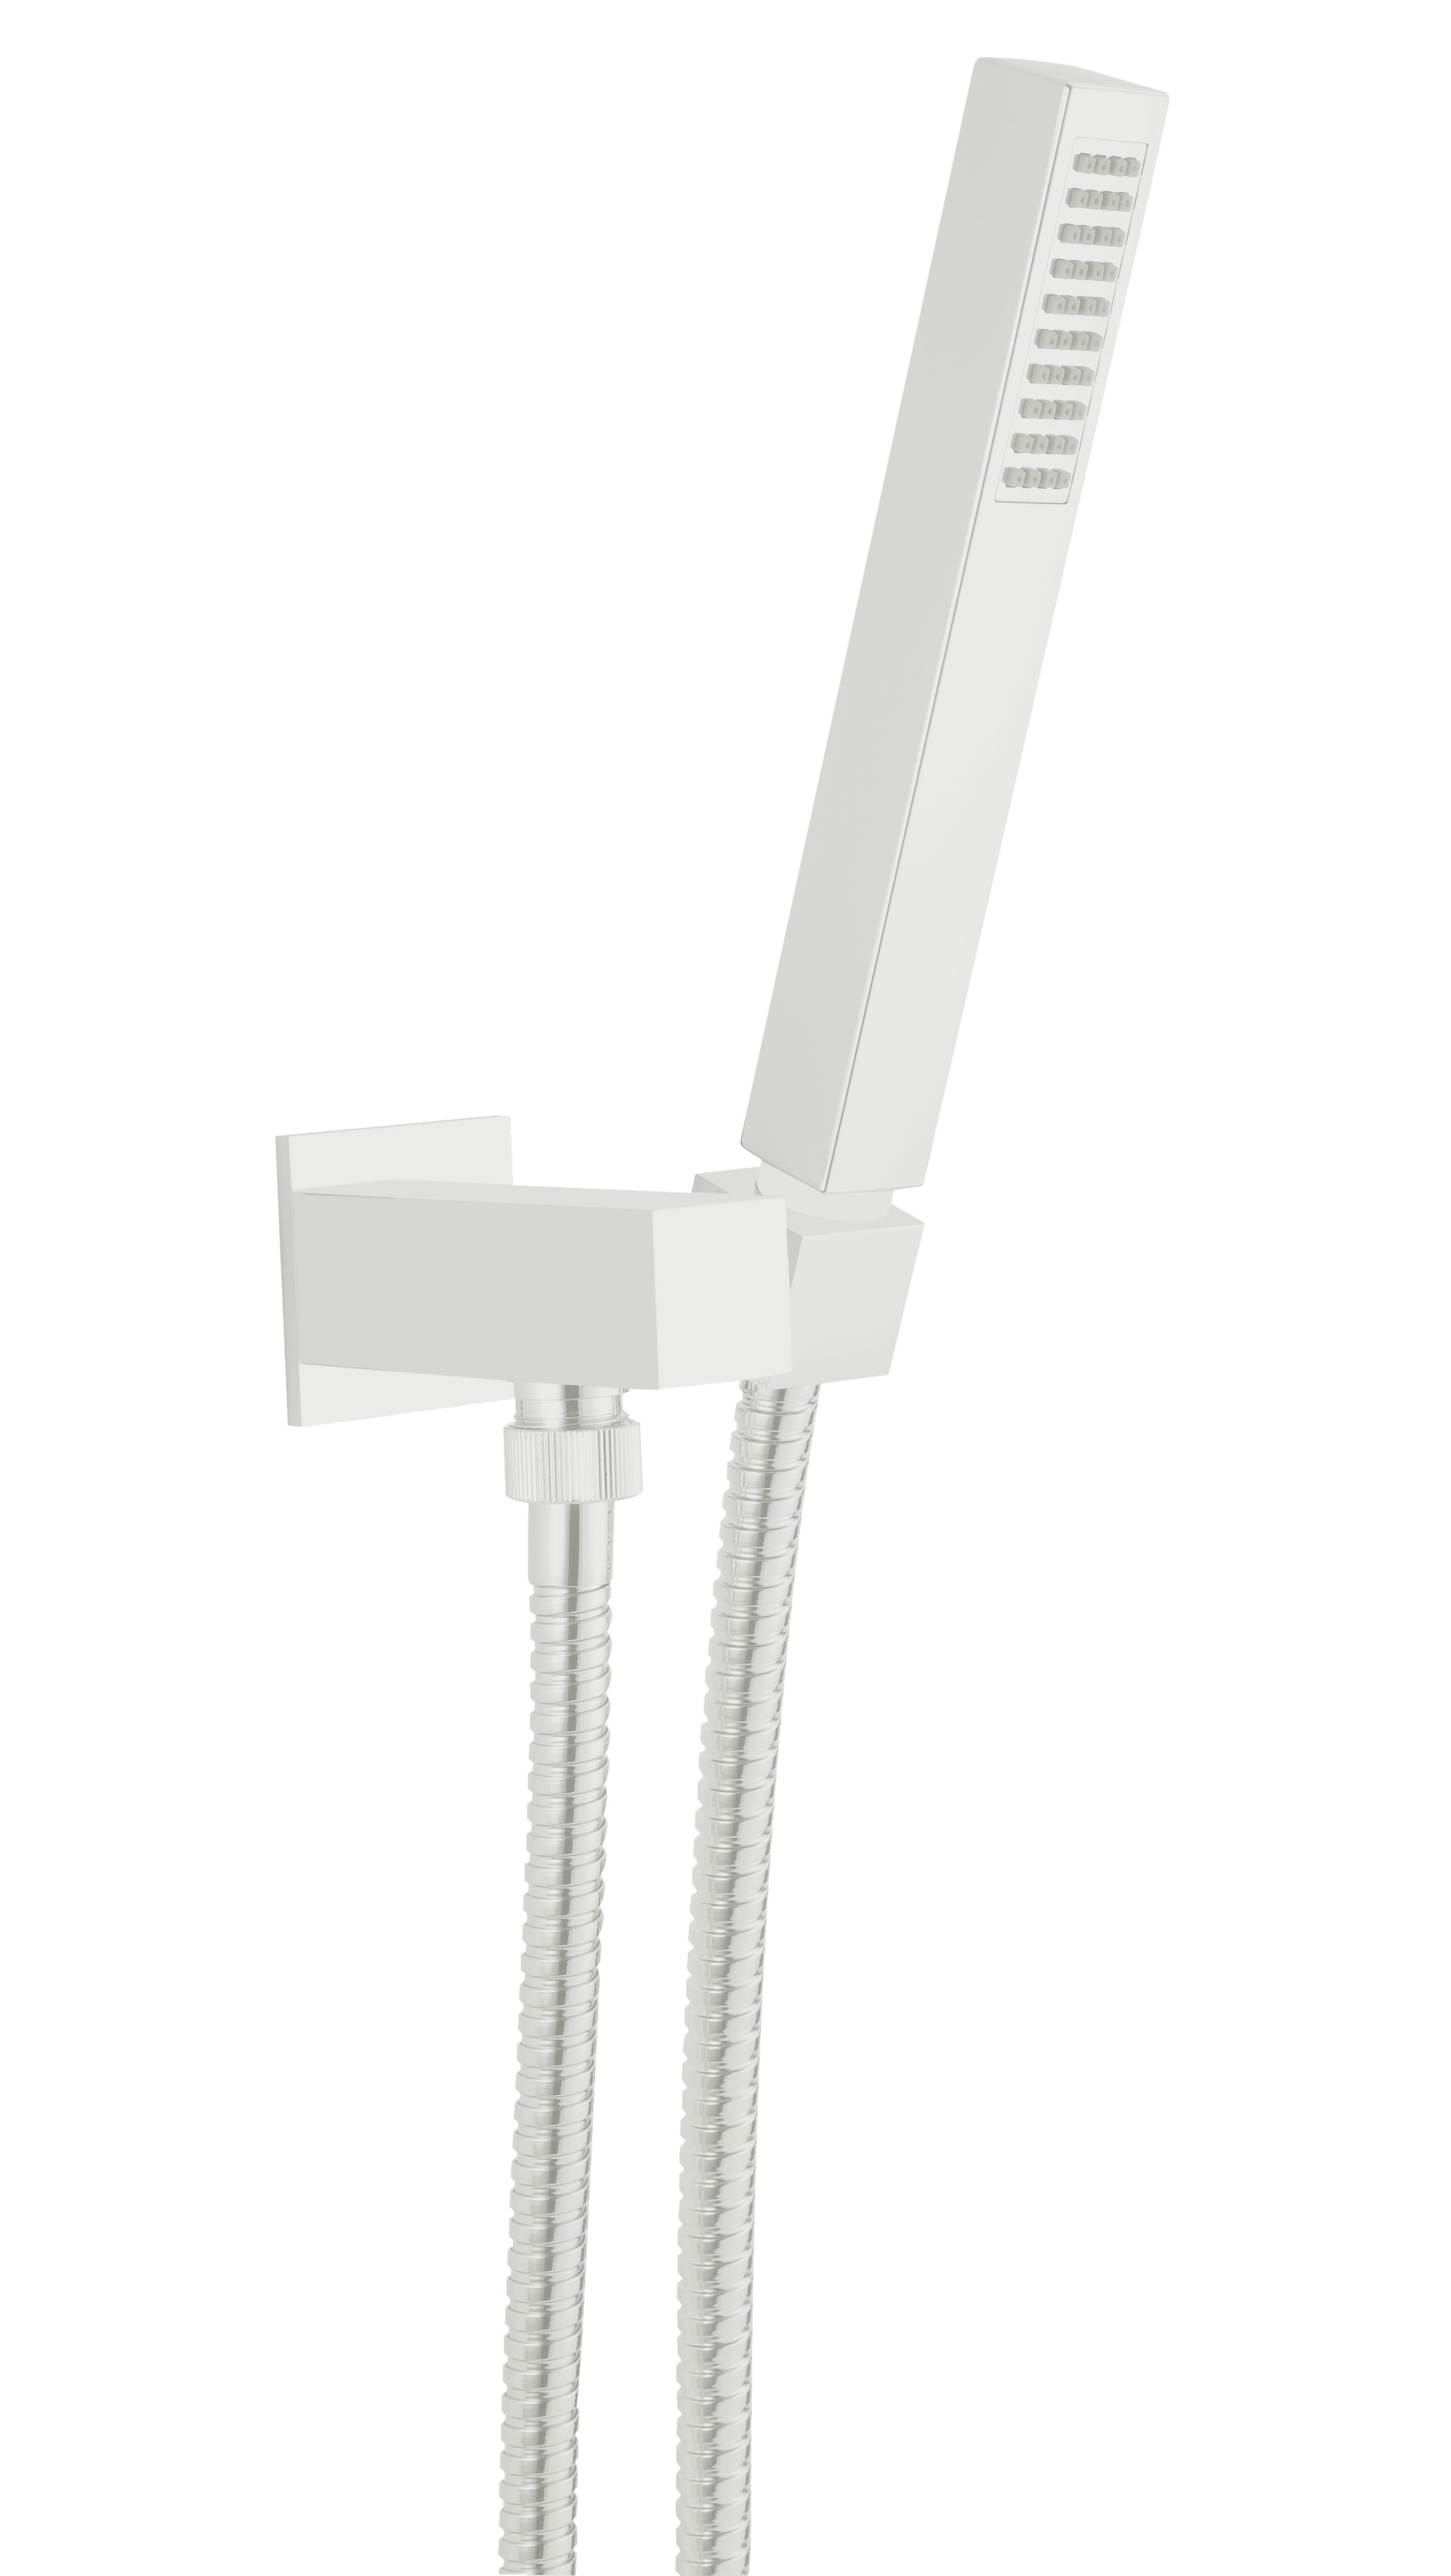 Wall water outlet with support, flexible and brass hand shower, mat white